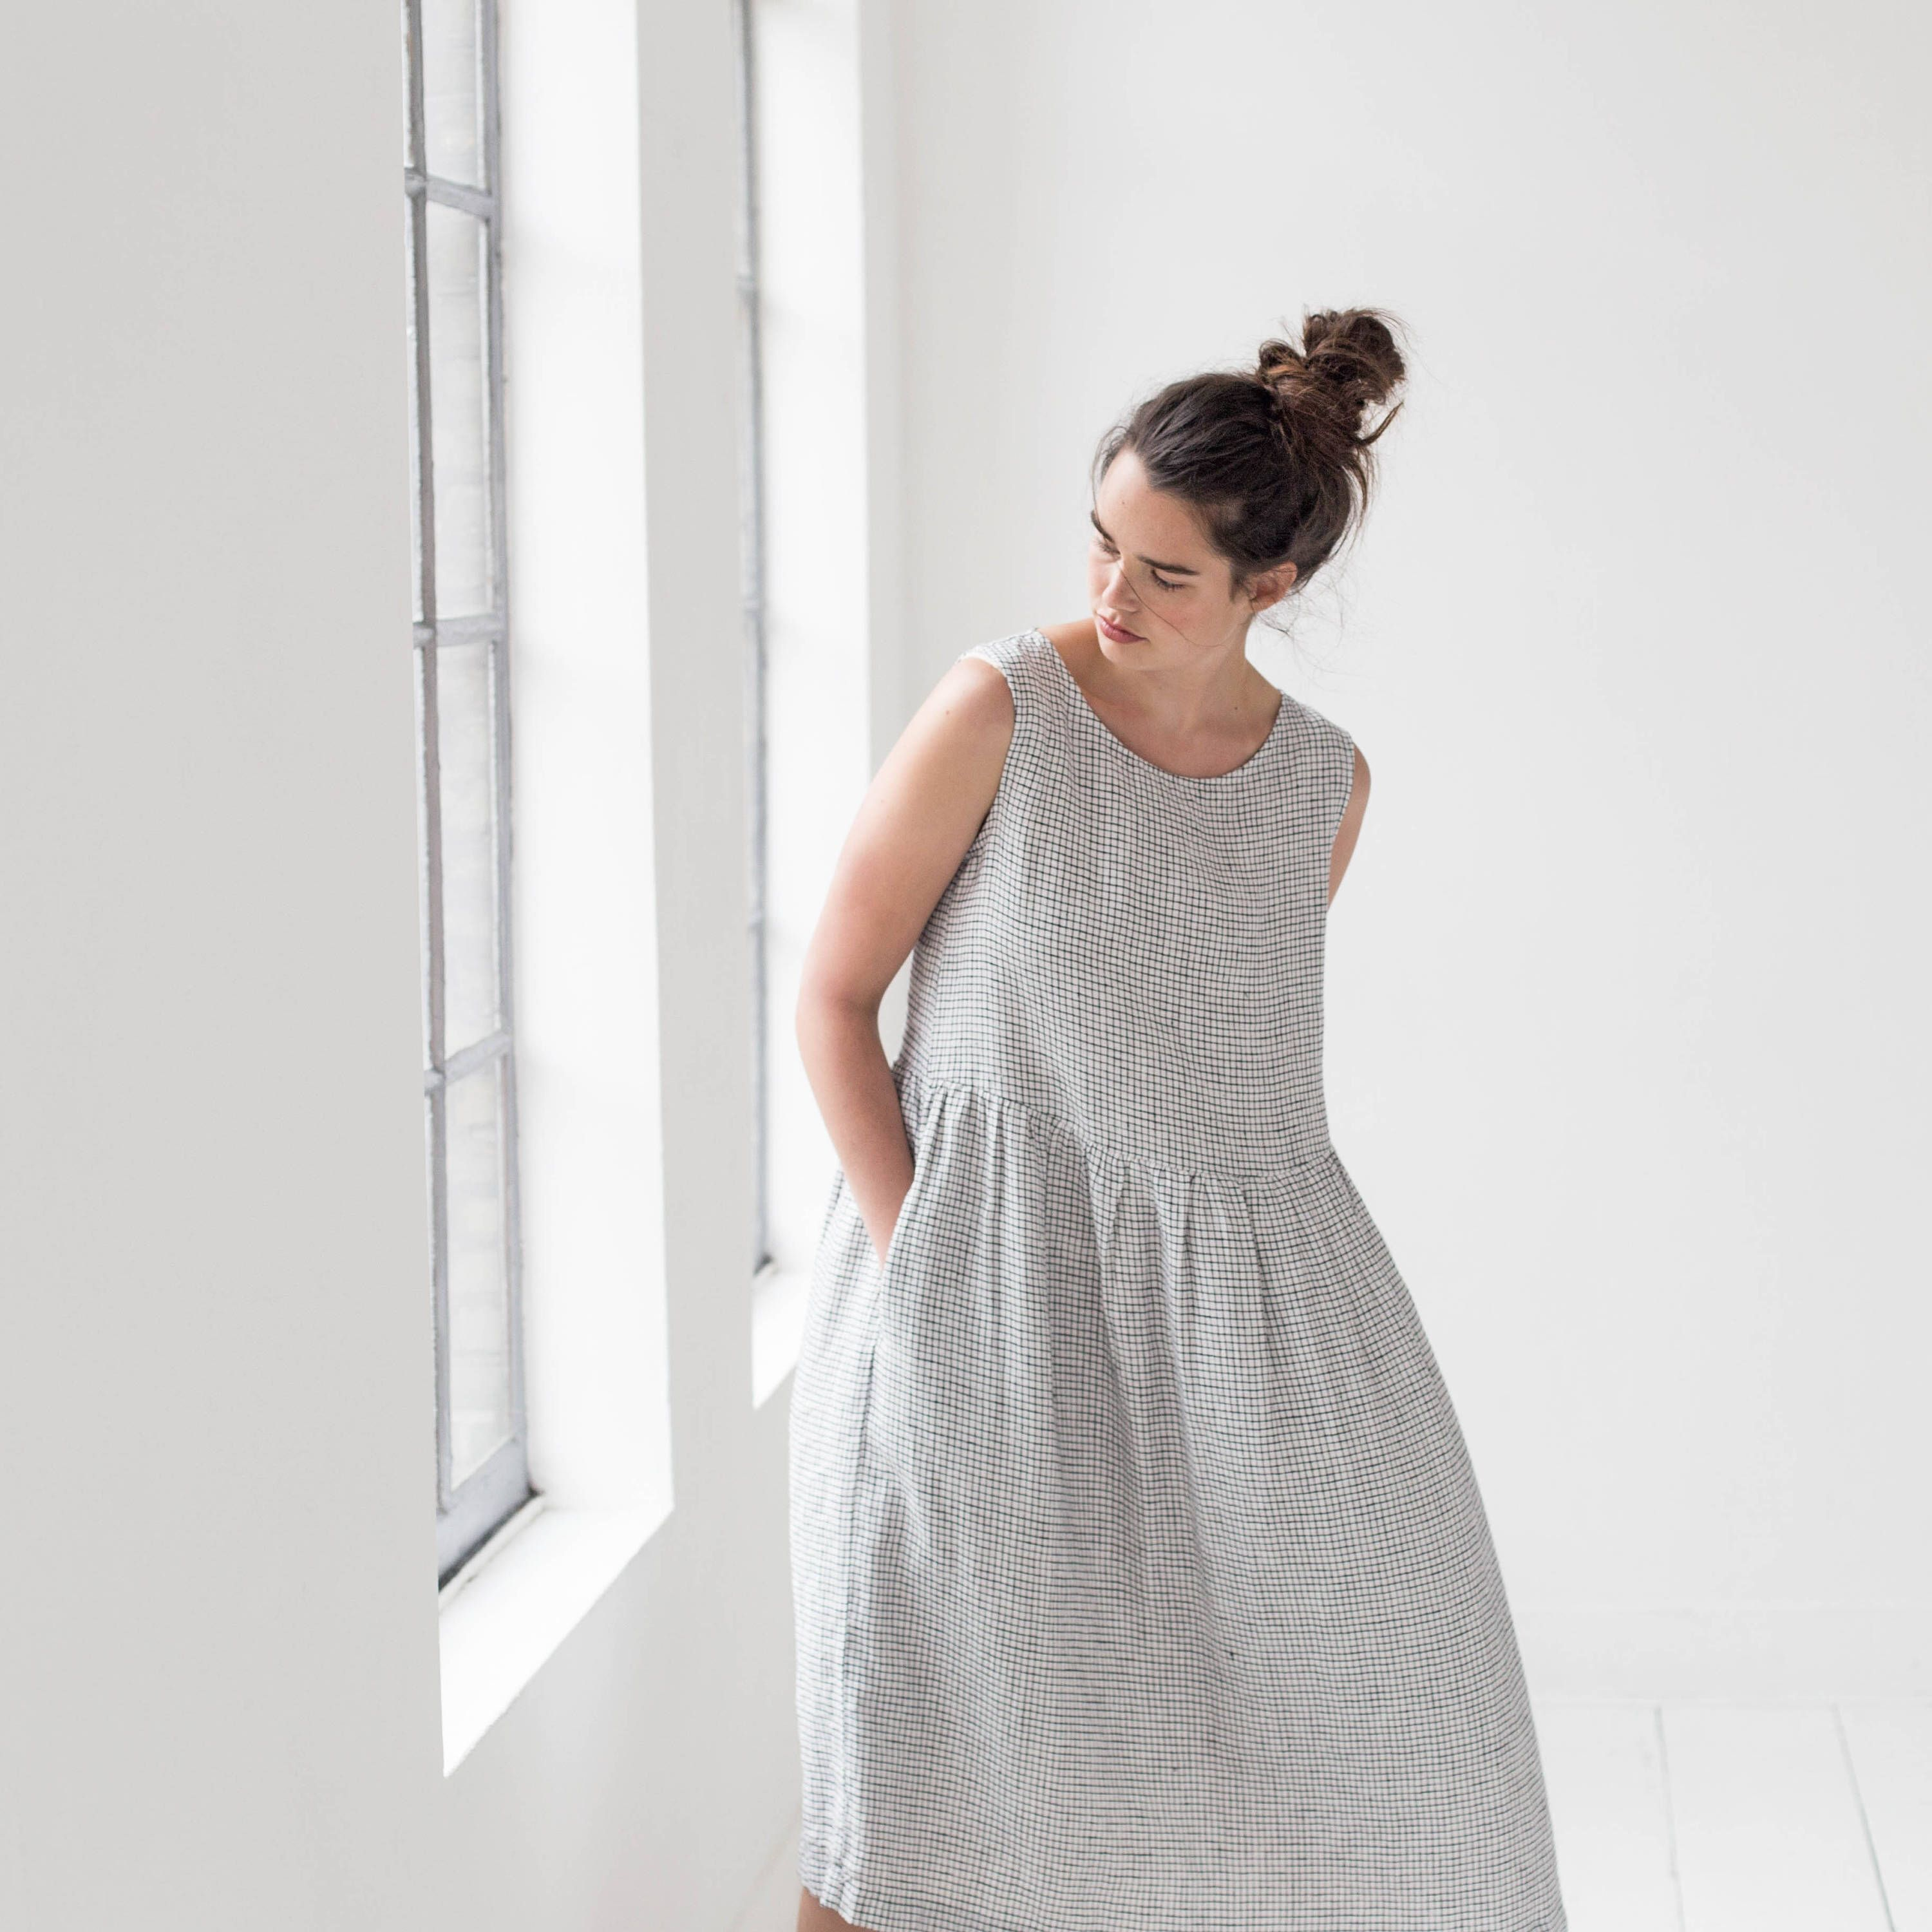 Smock Linen Dress In Maxi Length Loose Linen Sleeveless Summer Dress Washed And Soft Linen Dress In Small Checks Maxi Linen Dress Sleeveless Dress Summer Linen Maxi Dress Summer Dresses [ 3000 x 3000 Pixel ]